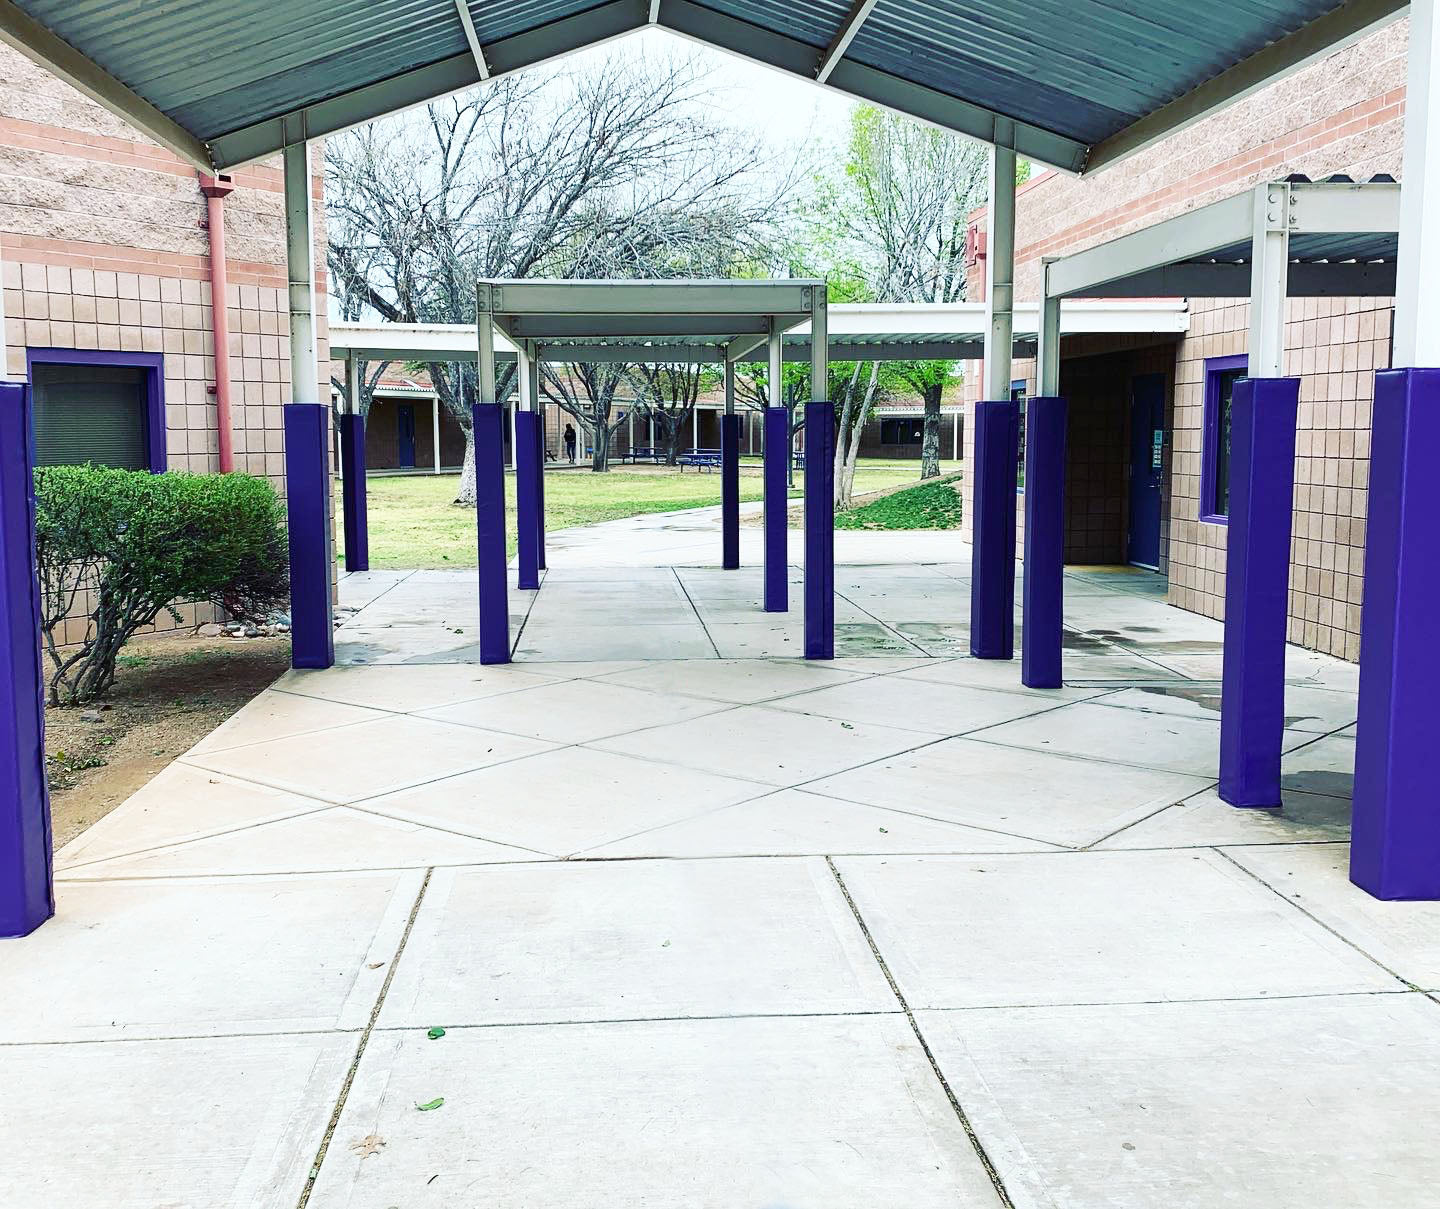 School Courtyard outdoor pole square pole pad - purple